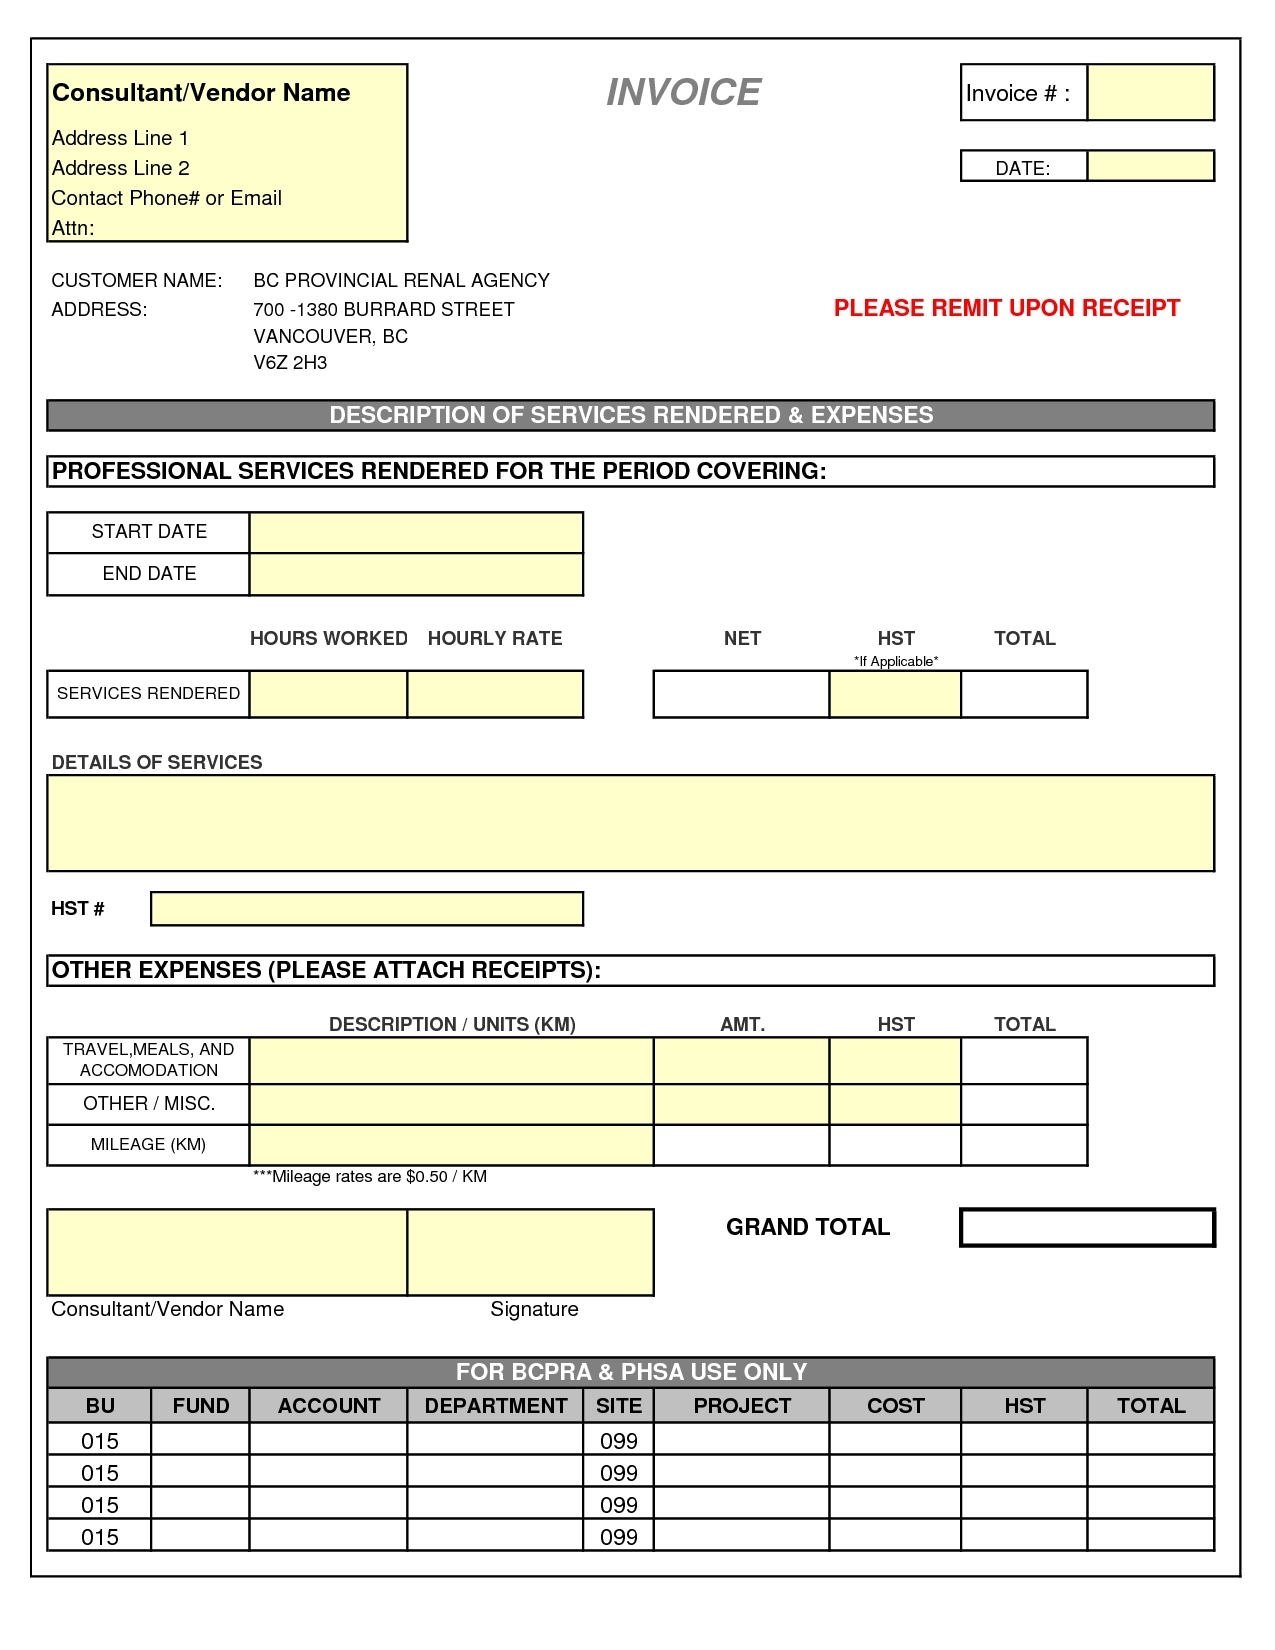 consulting invoice example | invoice template free 2016 sample invoice for consulting